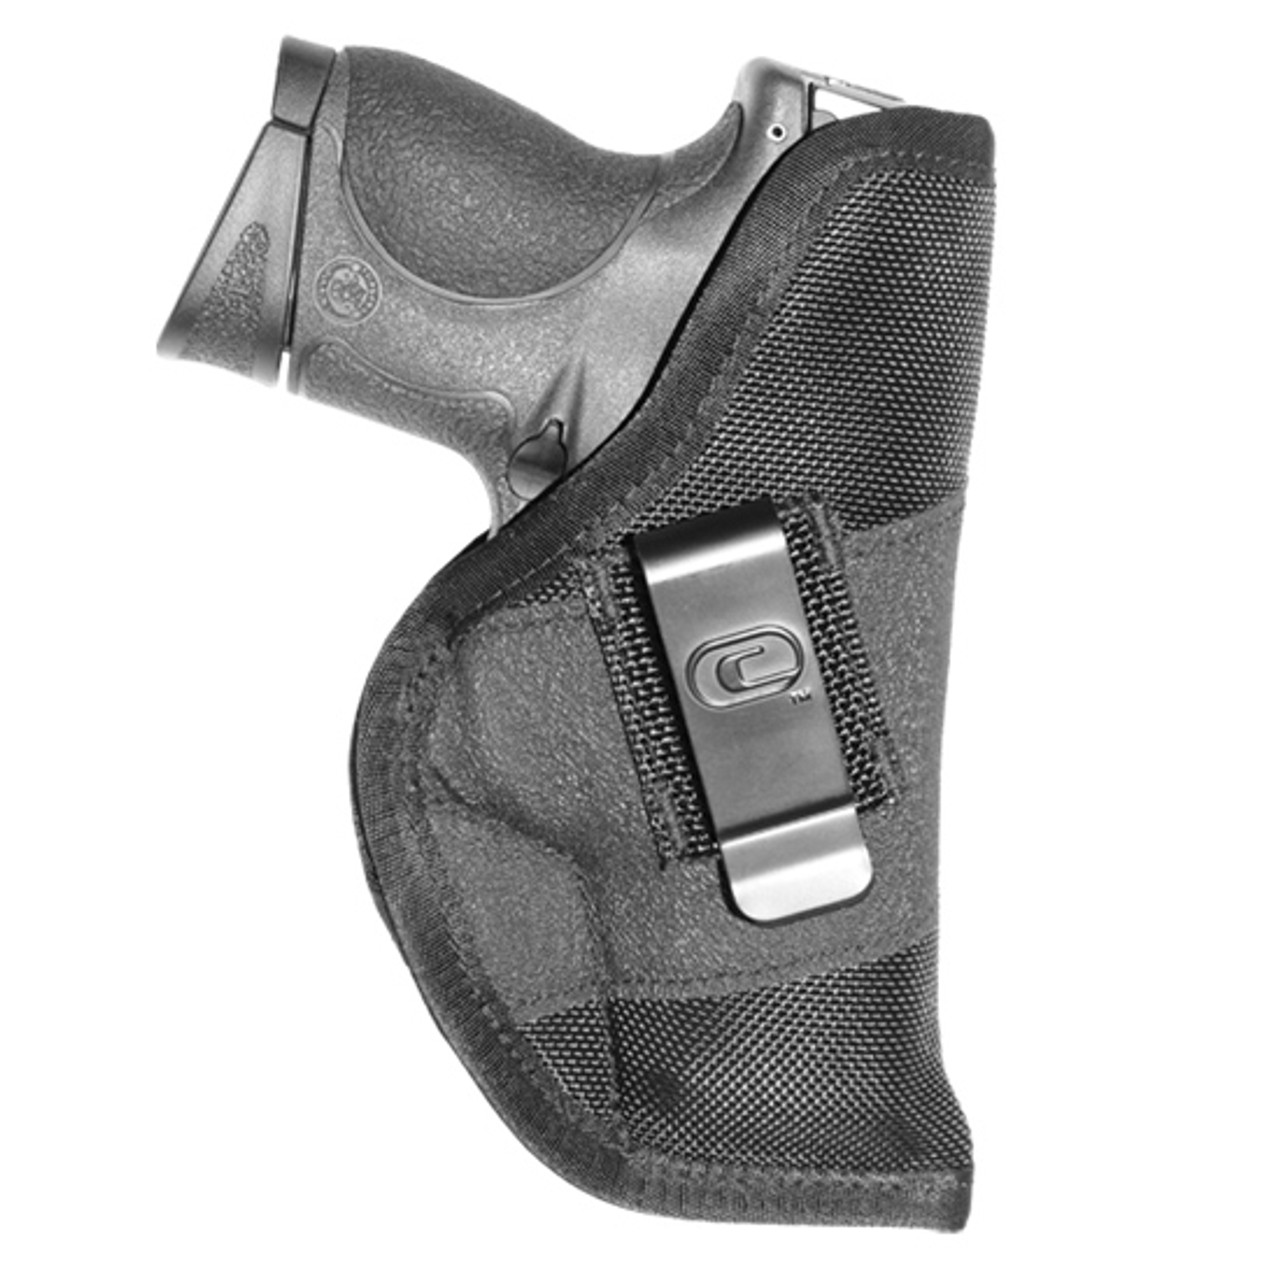 'The Grip Clip'  Sub-Compact  2 - 2.5 INCH IWB Holster by Crossfire - NEW